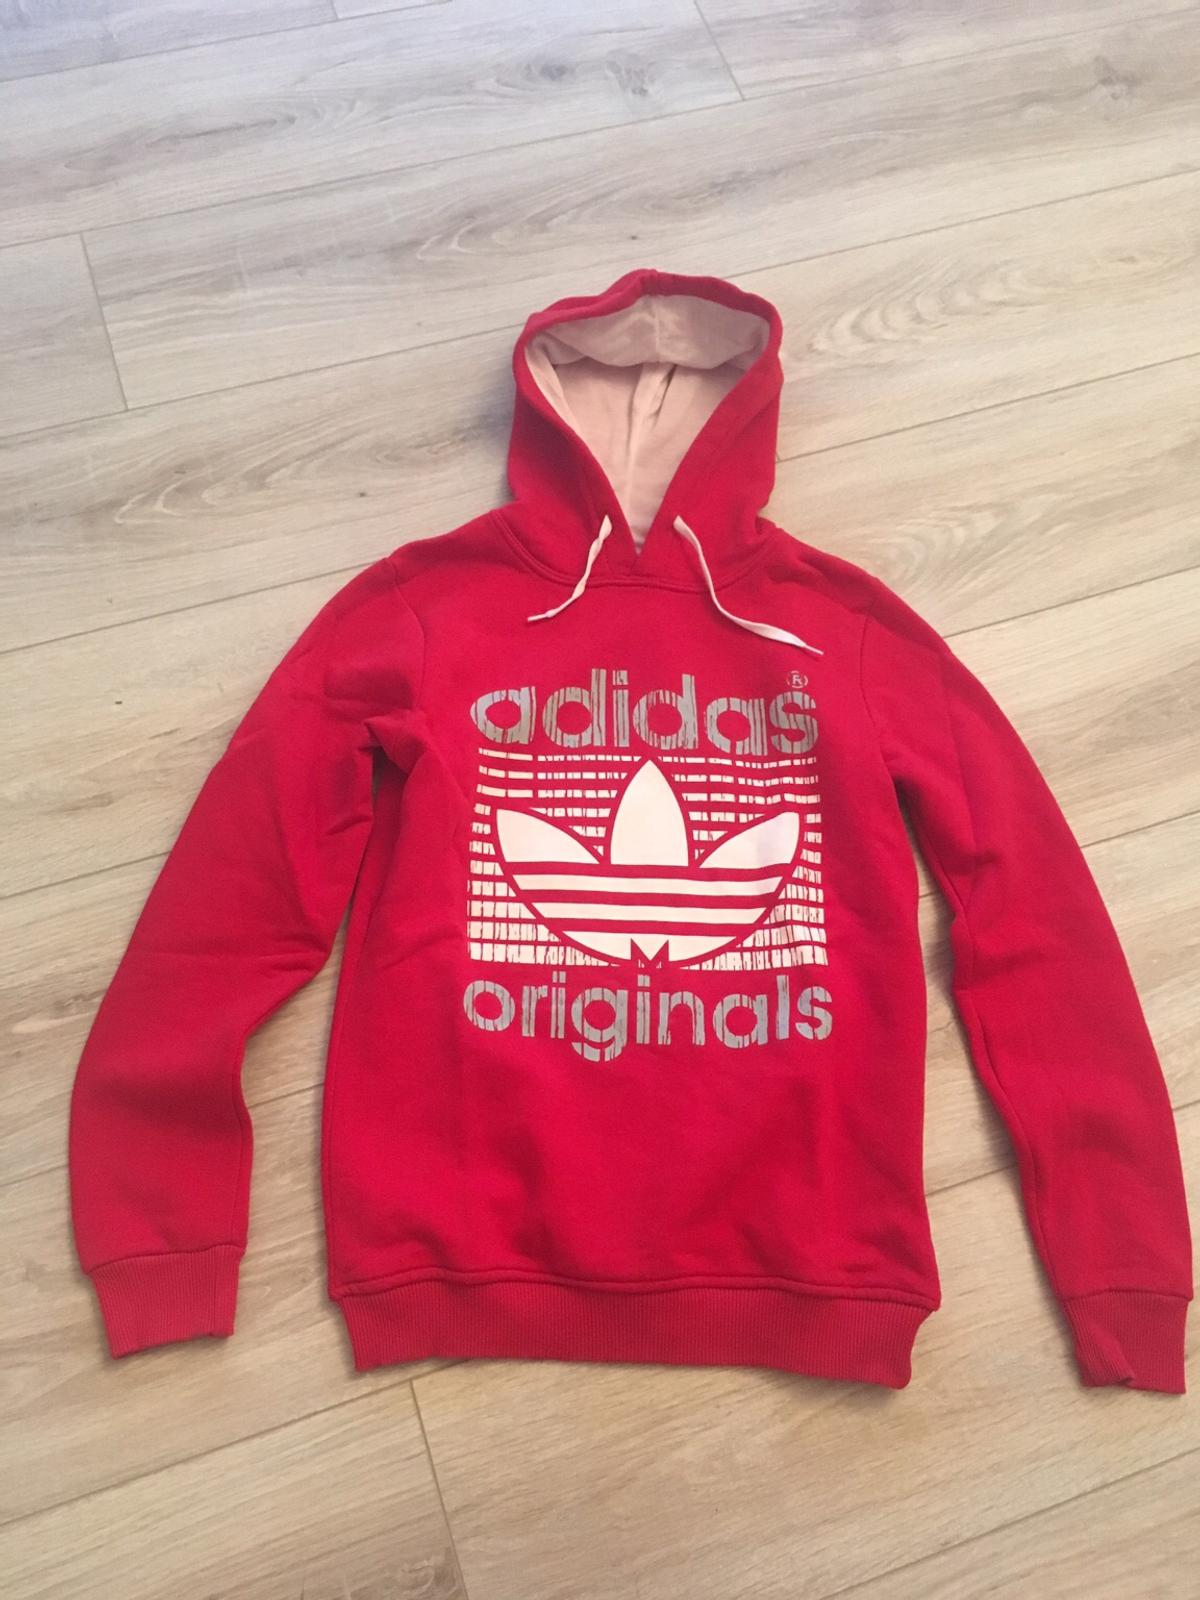 Roter Adidas Pullover Vergleich Test +++ Roter Adidas